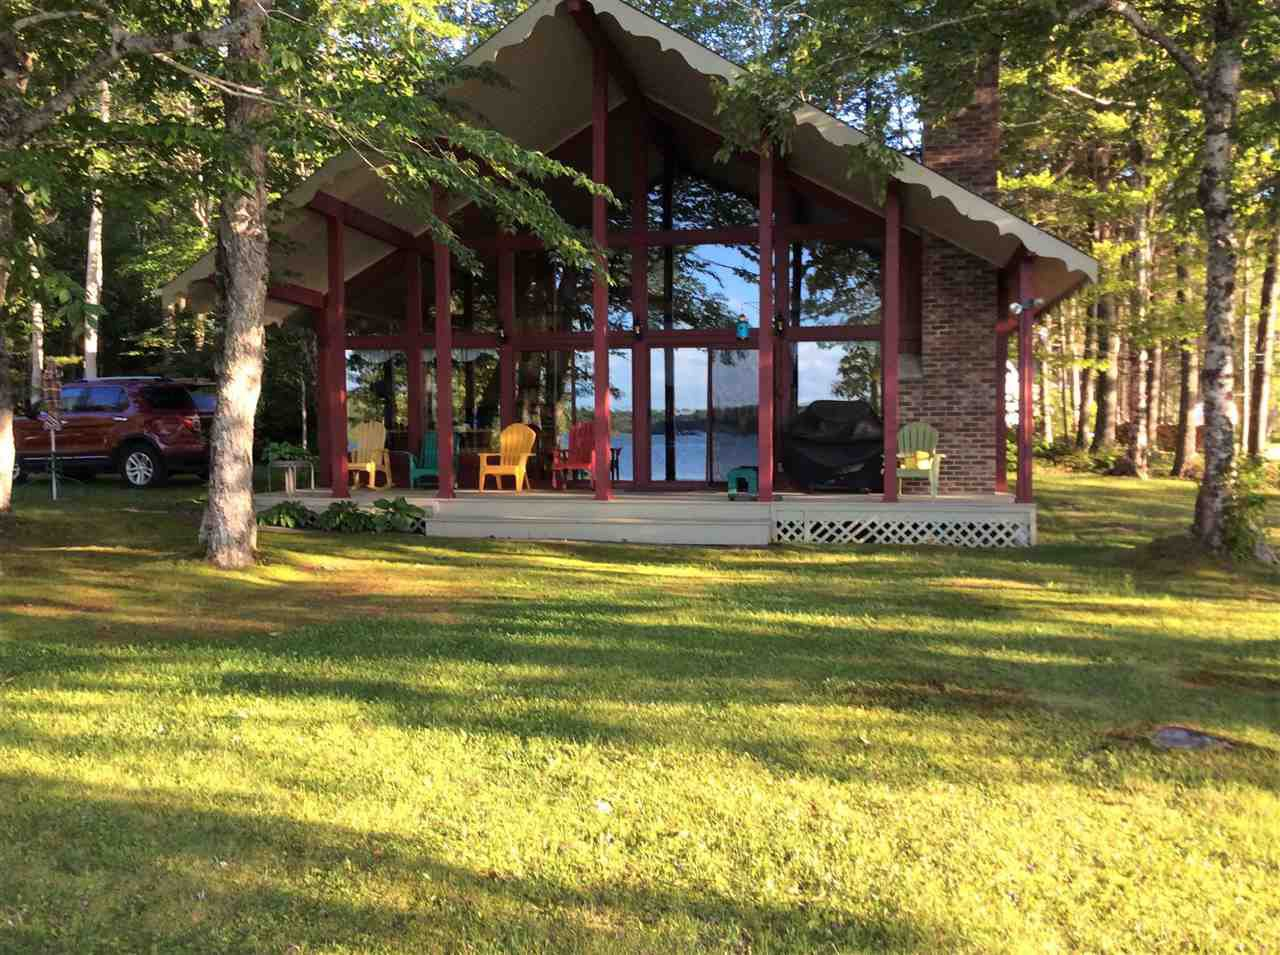 Main Photo: 341 DOUBLE LAKE Road in North Range: 401-Digby County Residential for sale (Annapolis Valley)  : MLS®# 202006703